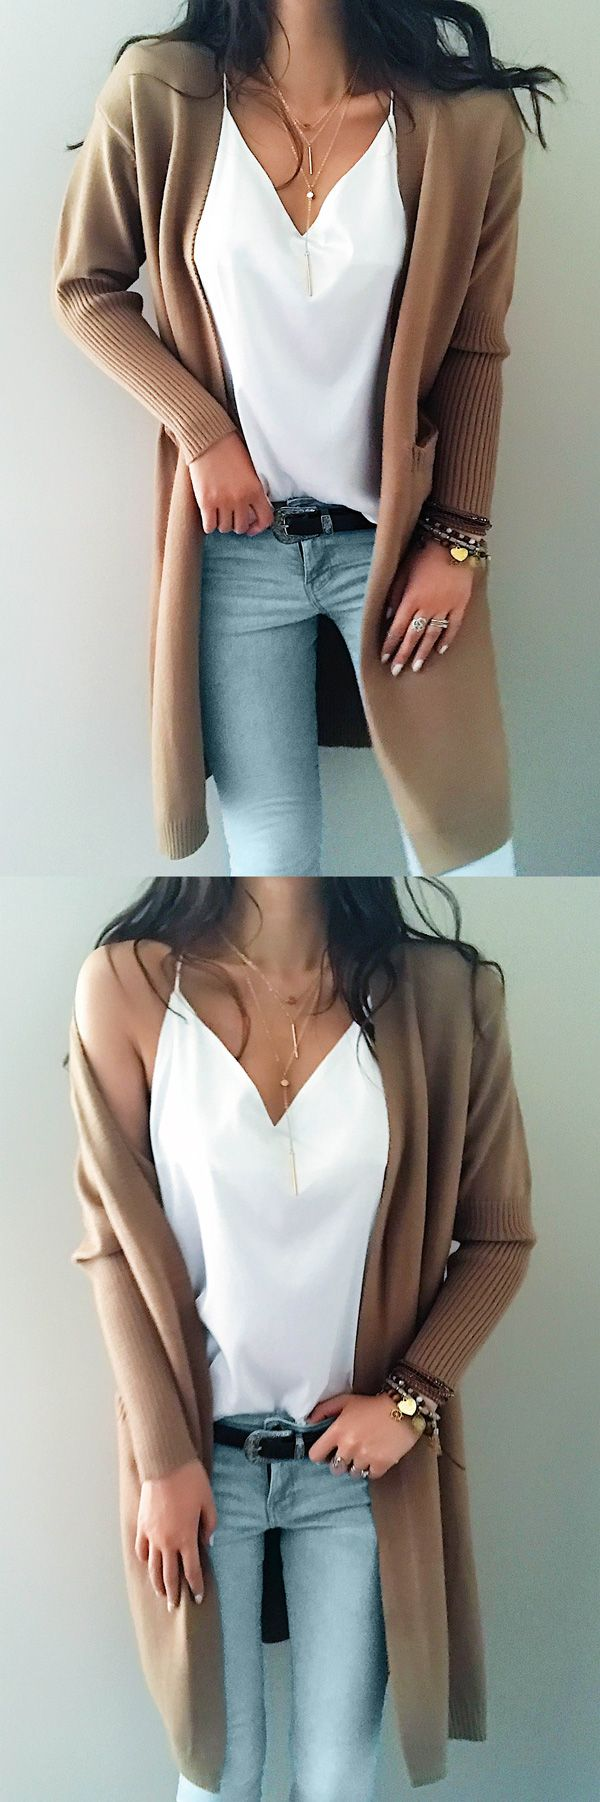 ONLY $44.99! Chicnico Street Casual Knit Solid Color Open Collar Cardigan FALL FASHION 2017 TREND CHEAP ONLINE STORE